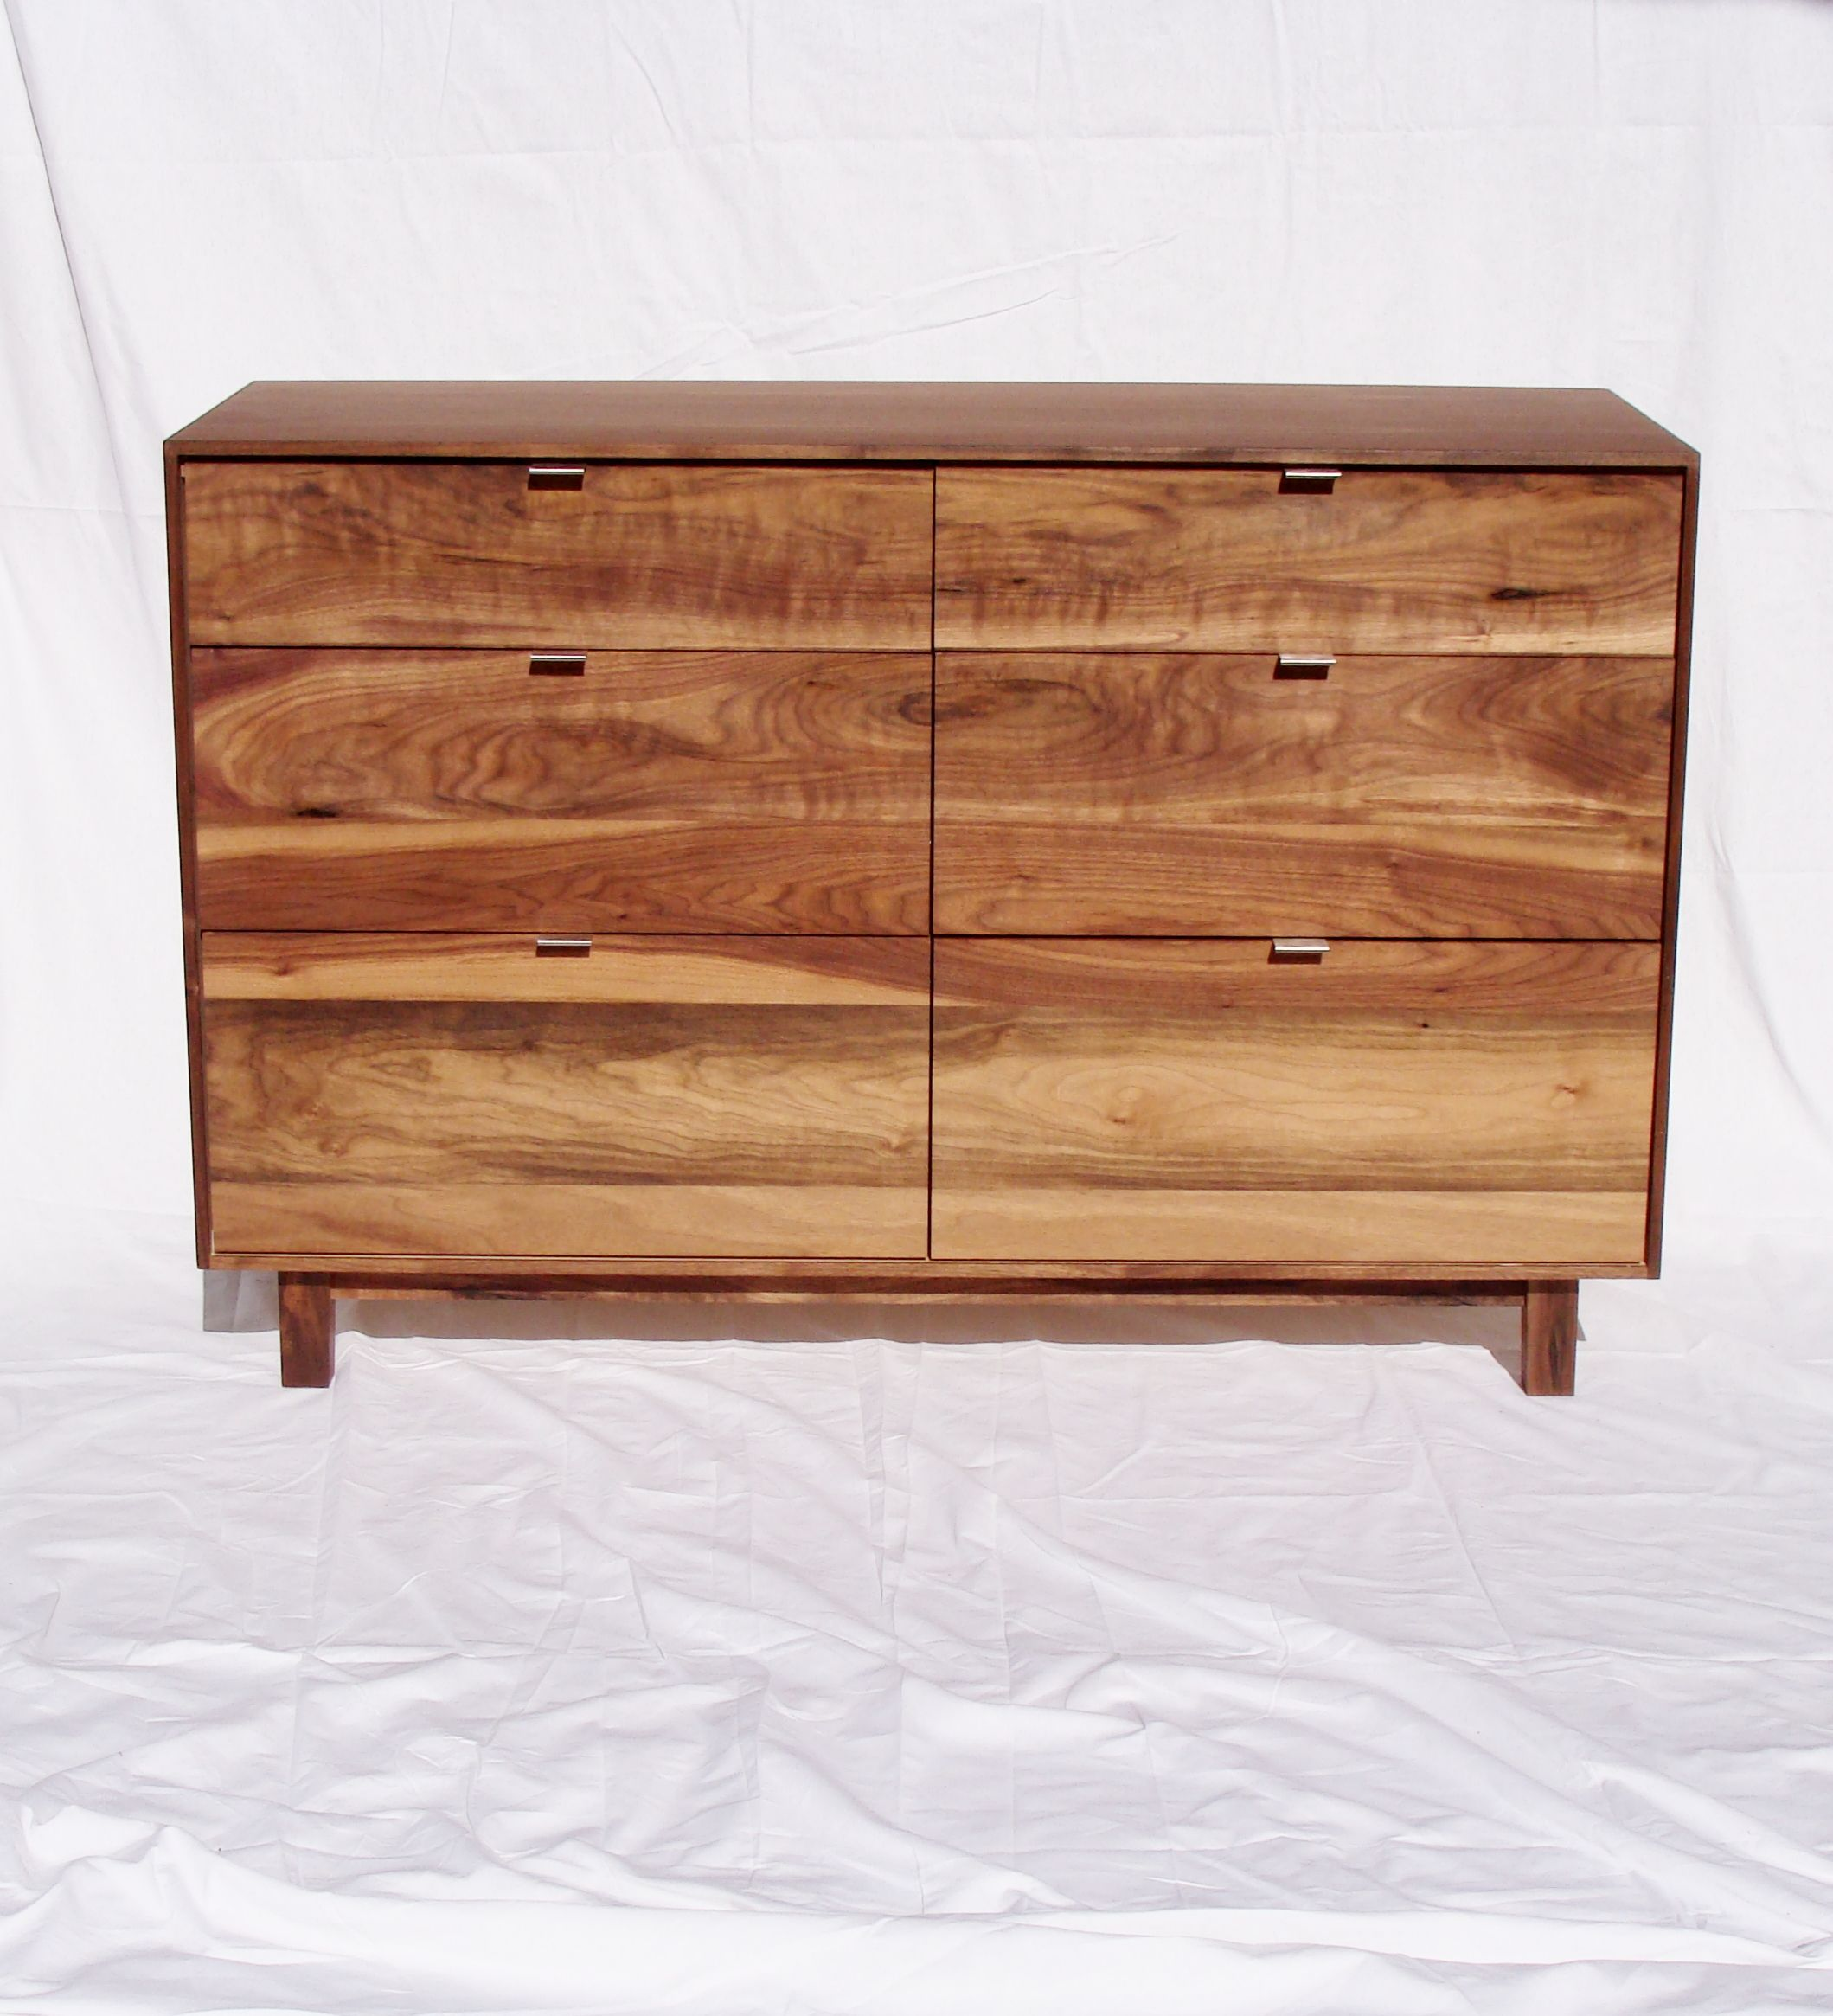 peculiar plans pretty dark lots off dresser ashley plush storage reclaimed big at knobs wood painting furniture upscale